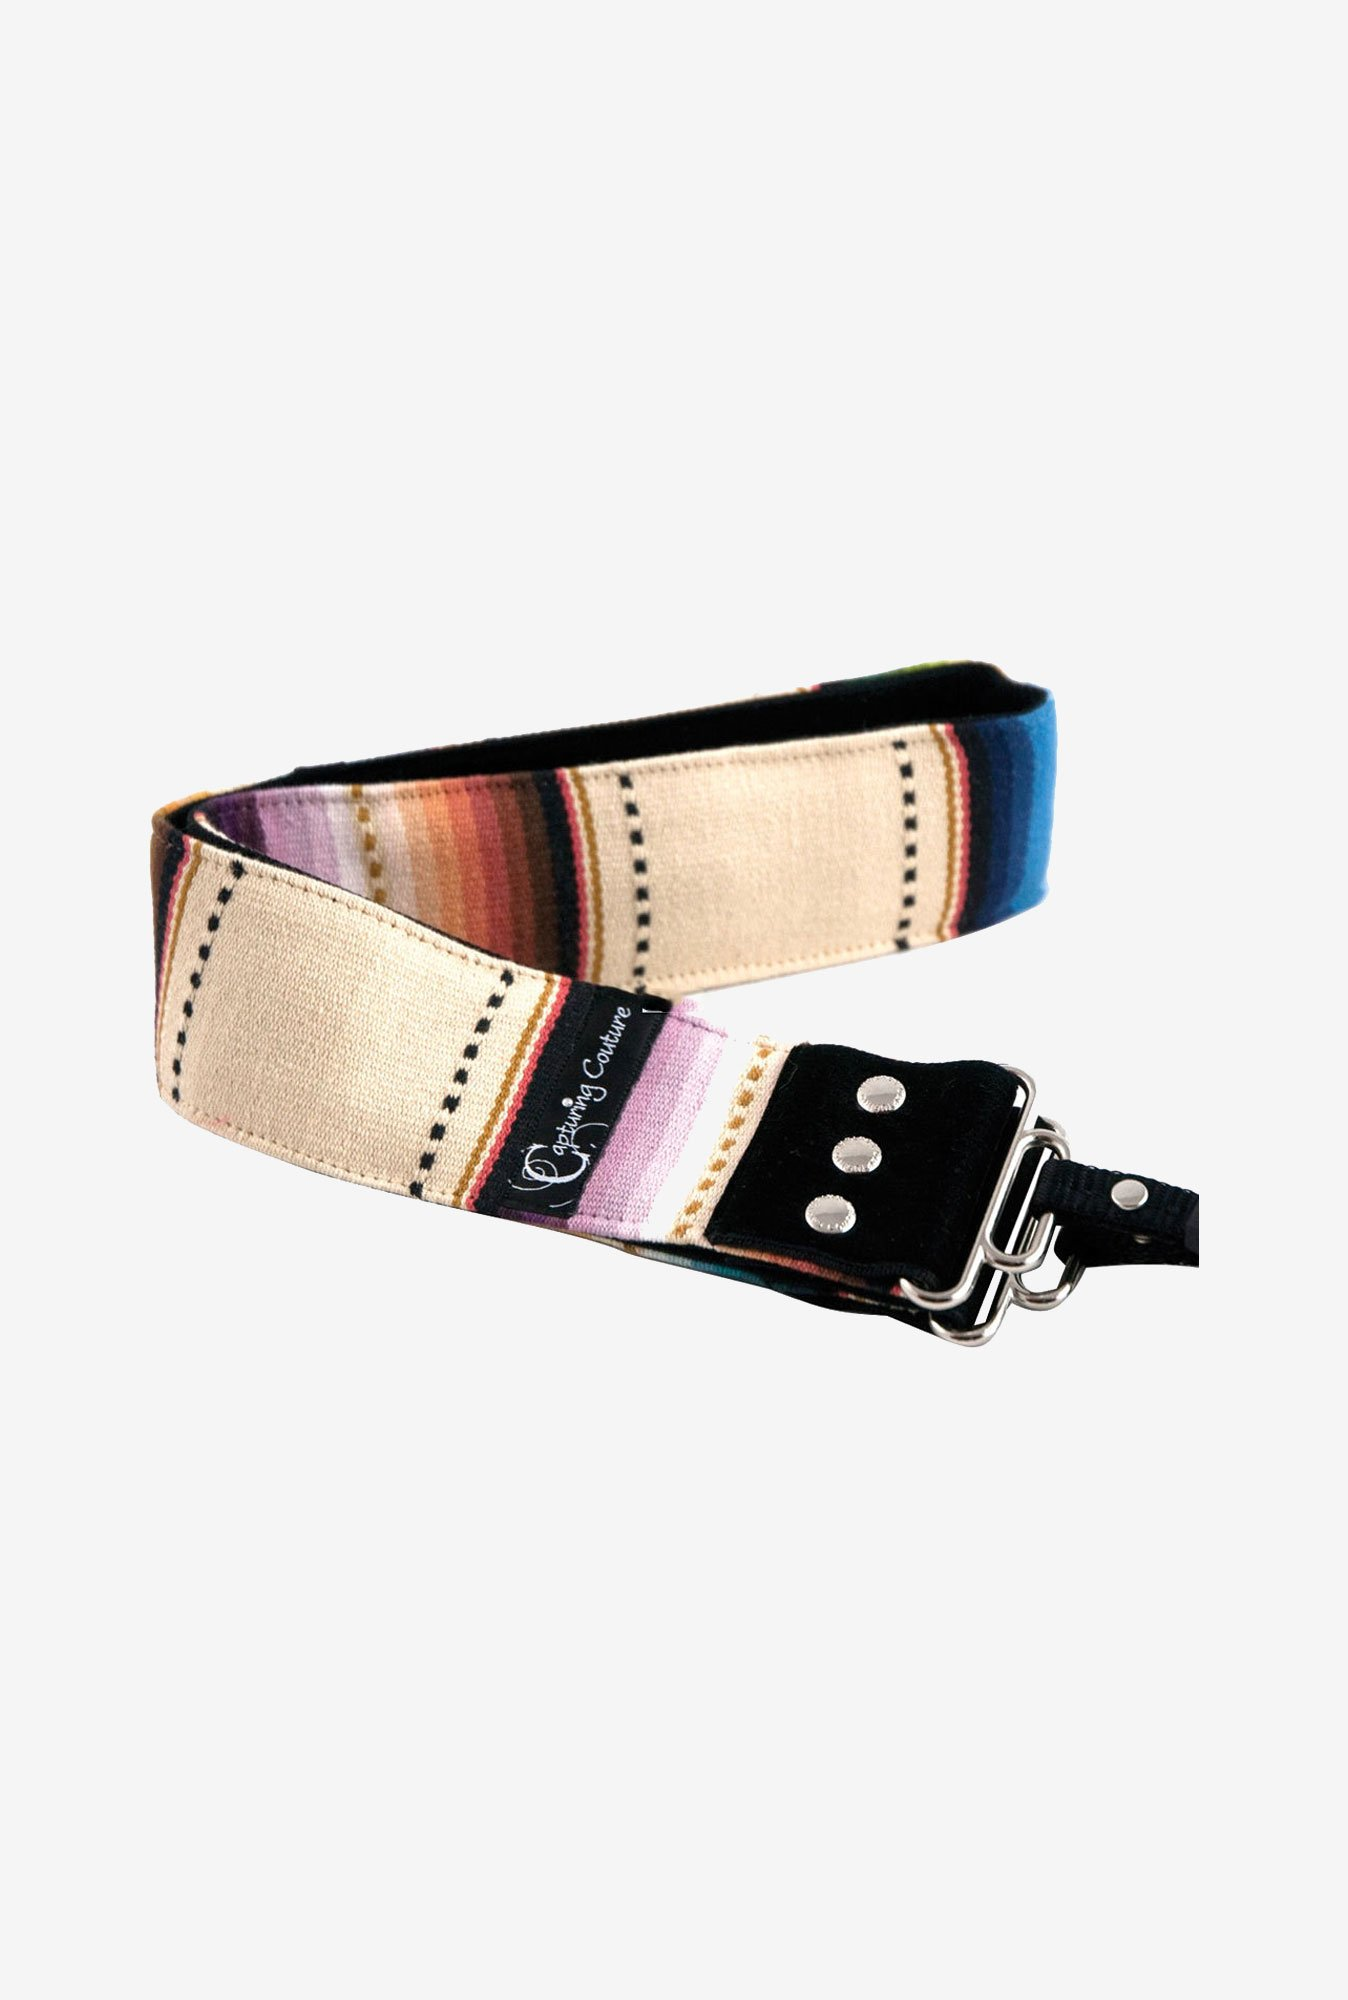 Capturing Couture SLR20-PLHP Navajo Camera Strap (Cream)